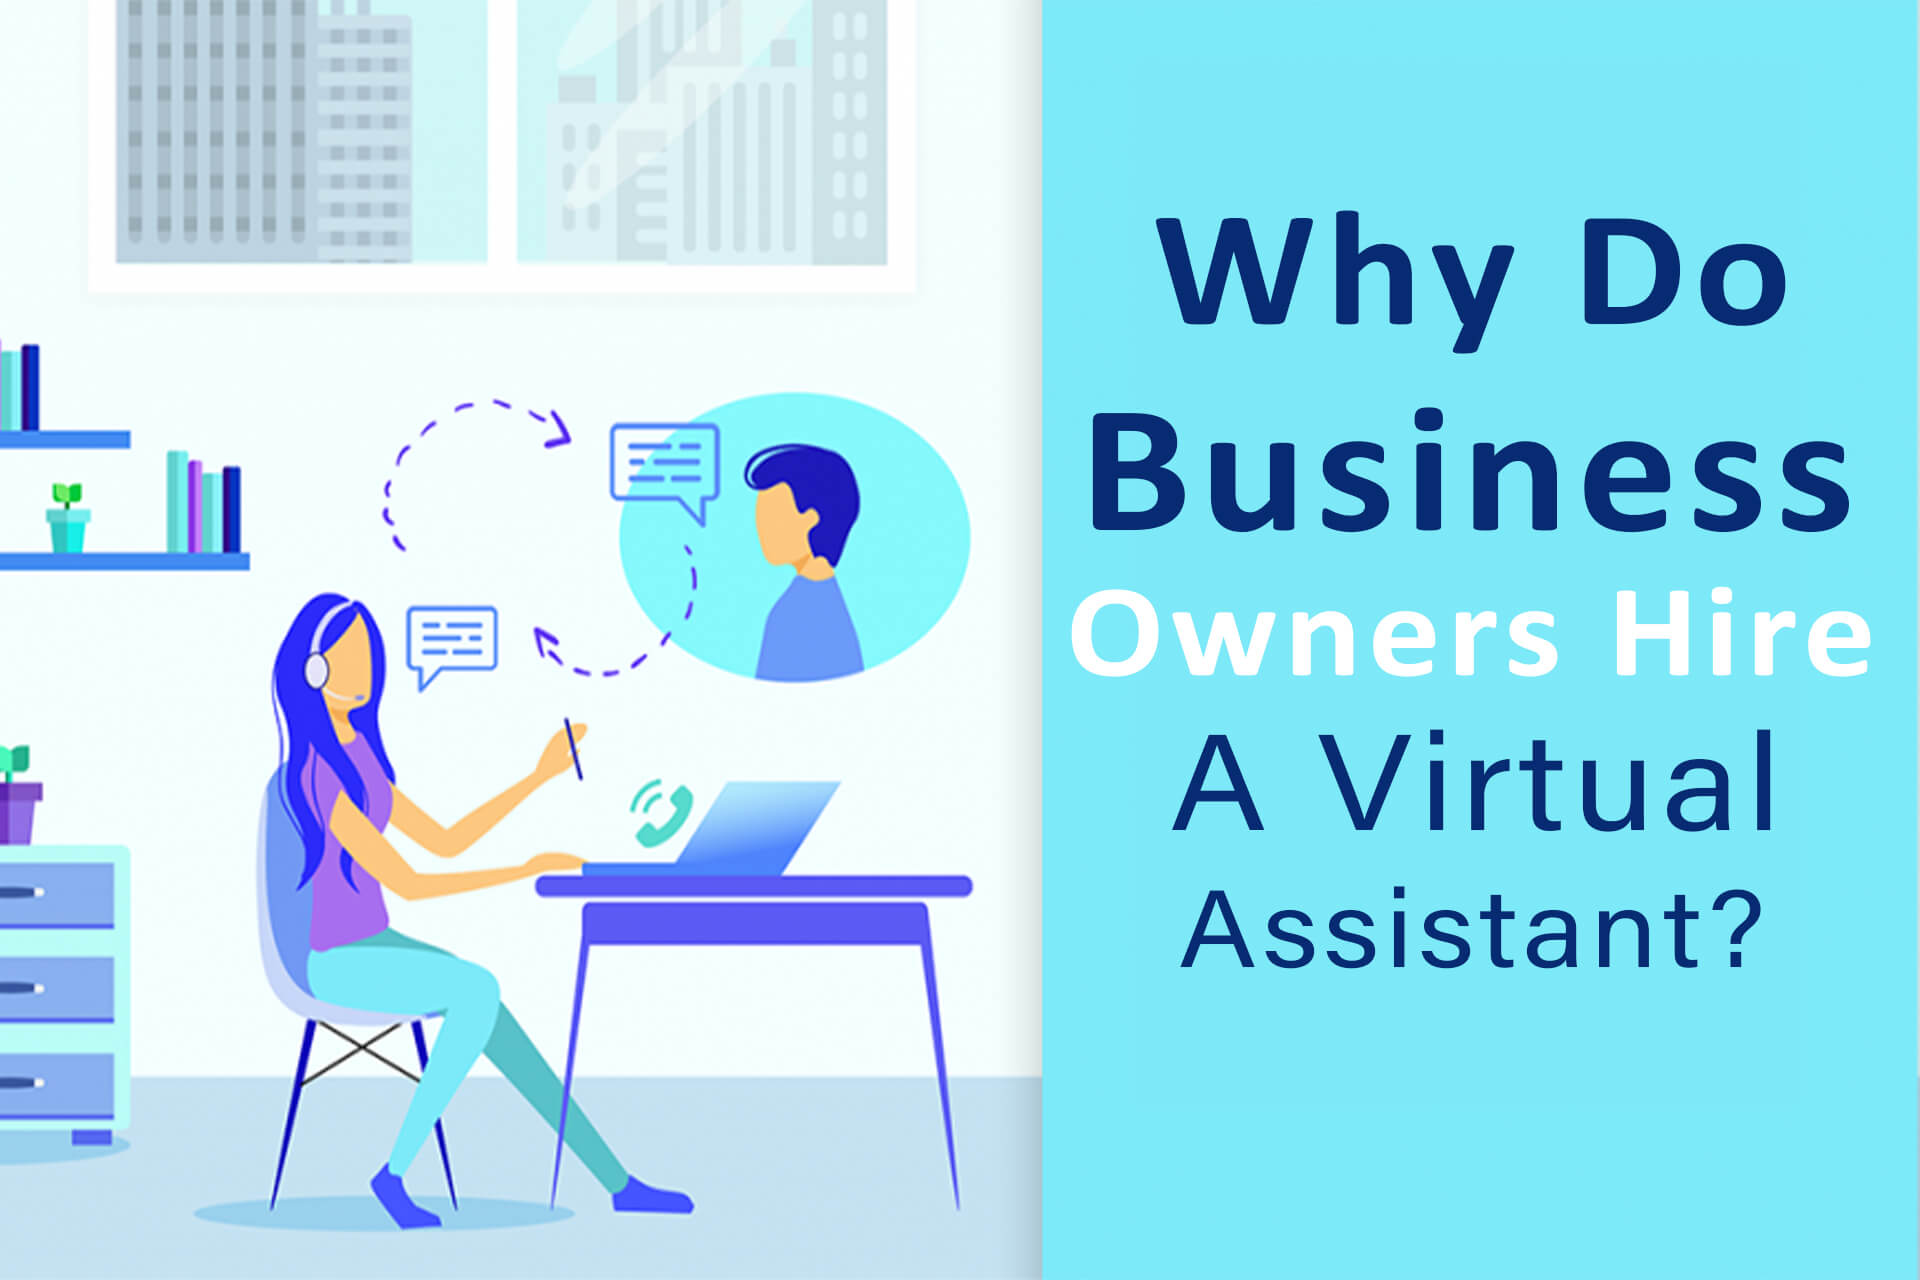 Why Do Business Owners Hire A Virtual Assistant?